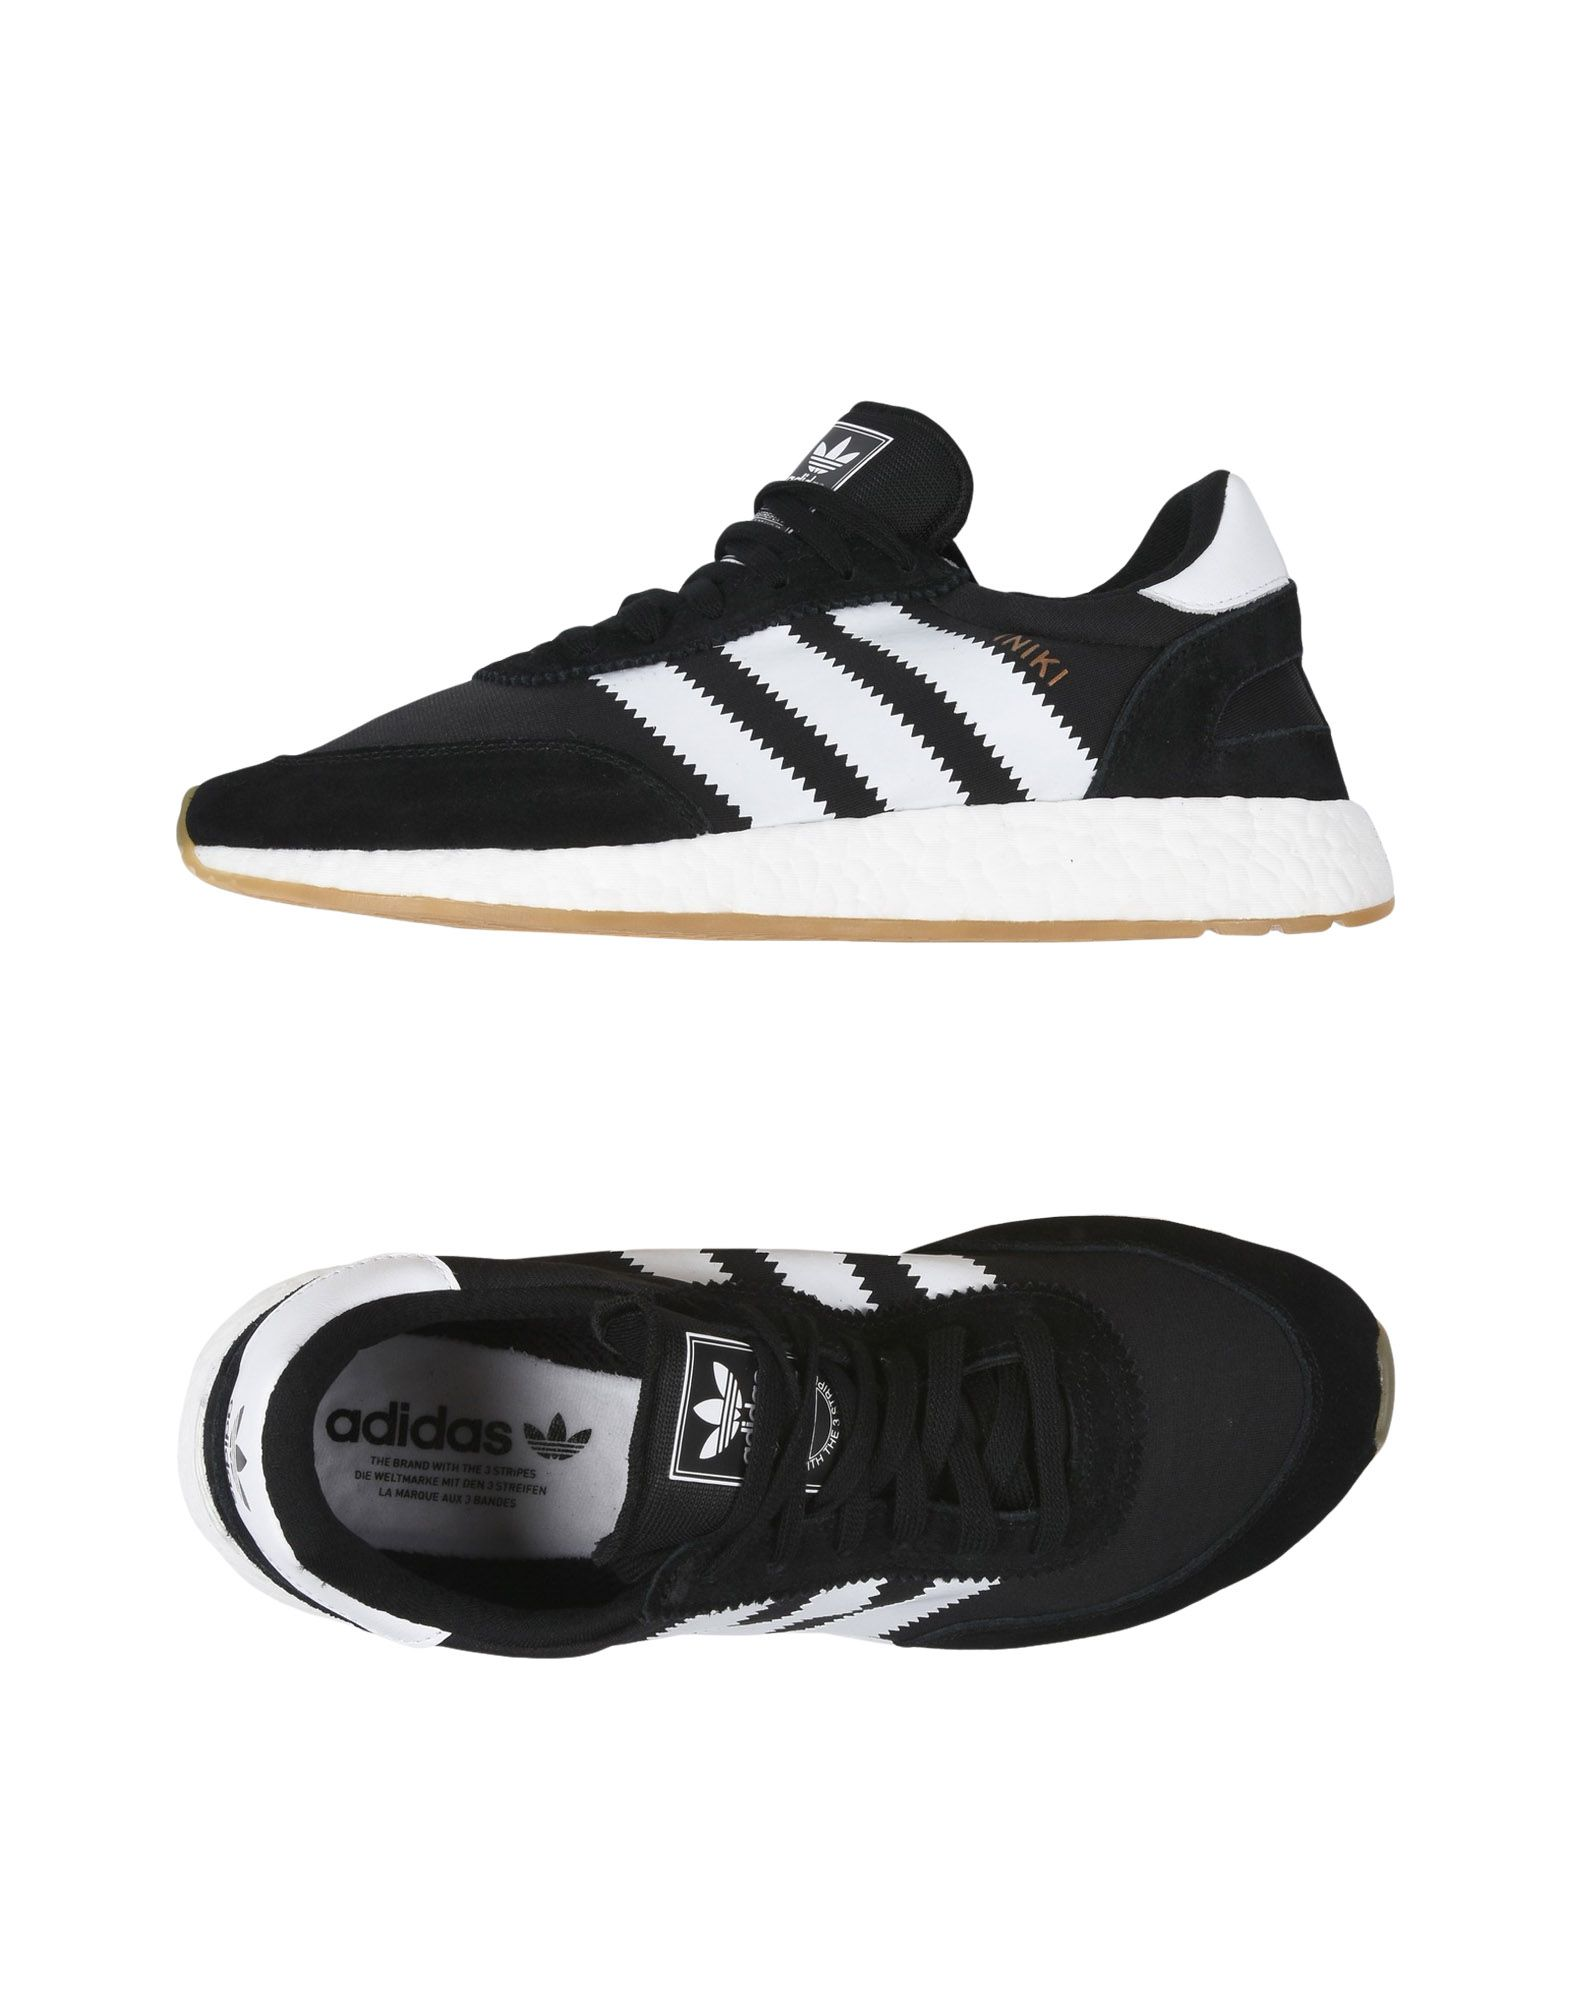 Adidas Originals I-5923 - Sneakers - Men Adidas Originals Sneakers - online on  Australia - Sneakers 11316758LP 061876